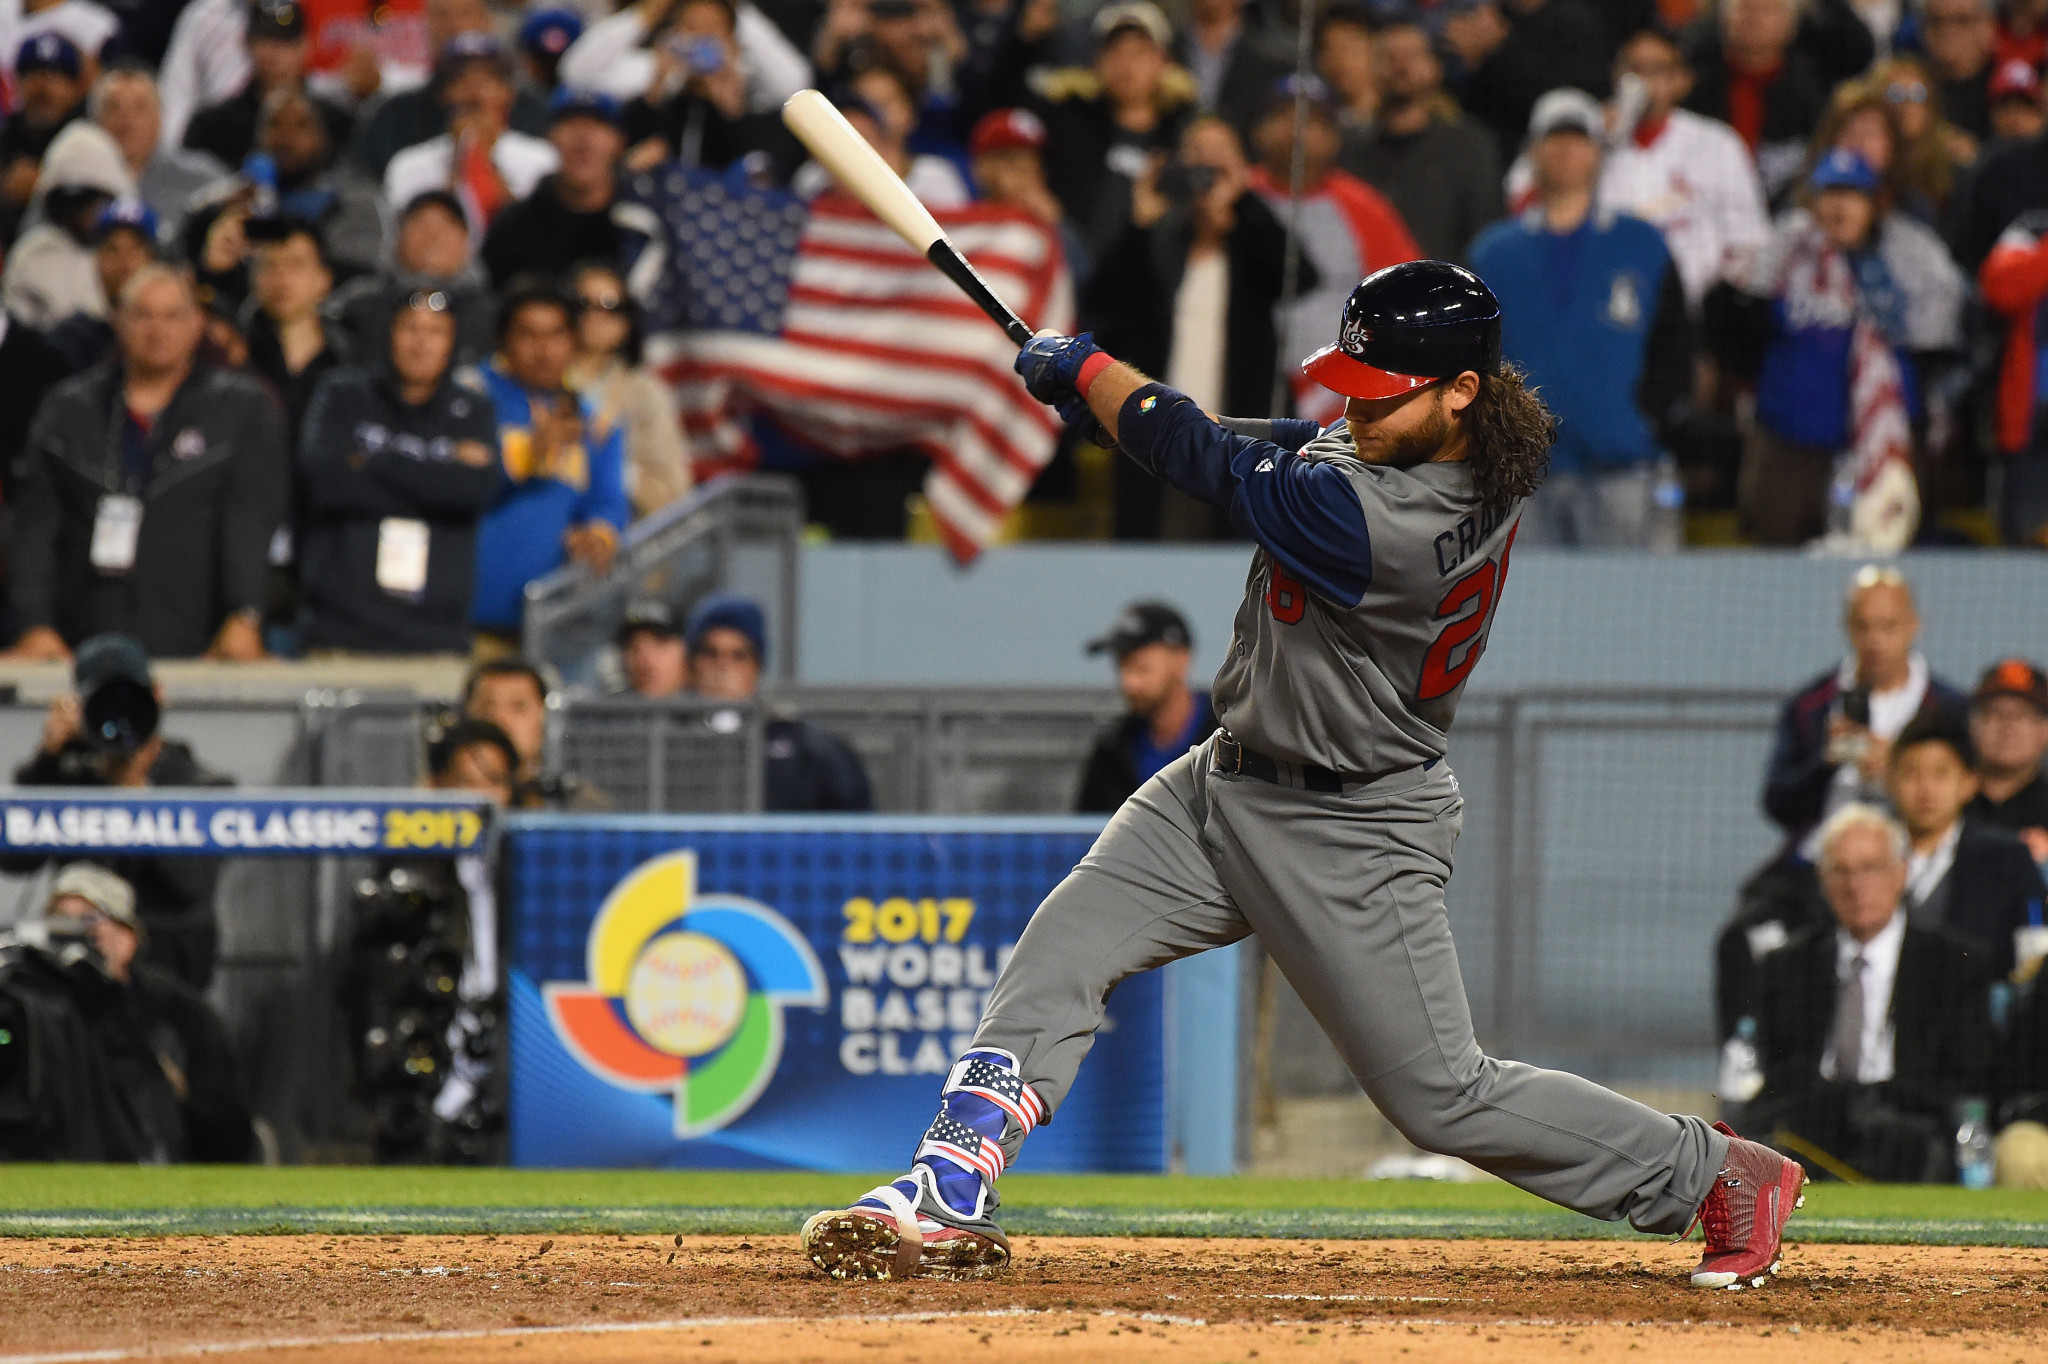 United States climb to summit of WBSC men's baseball rankings